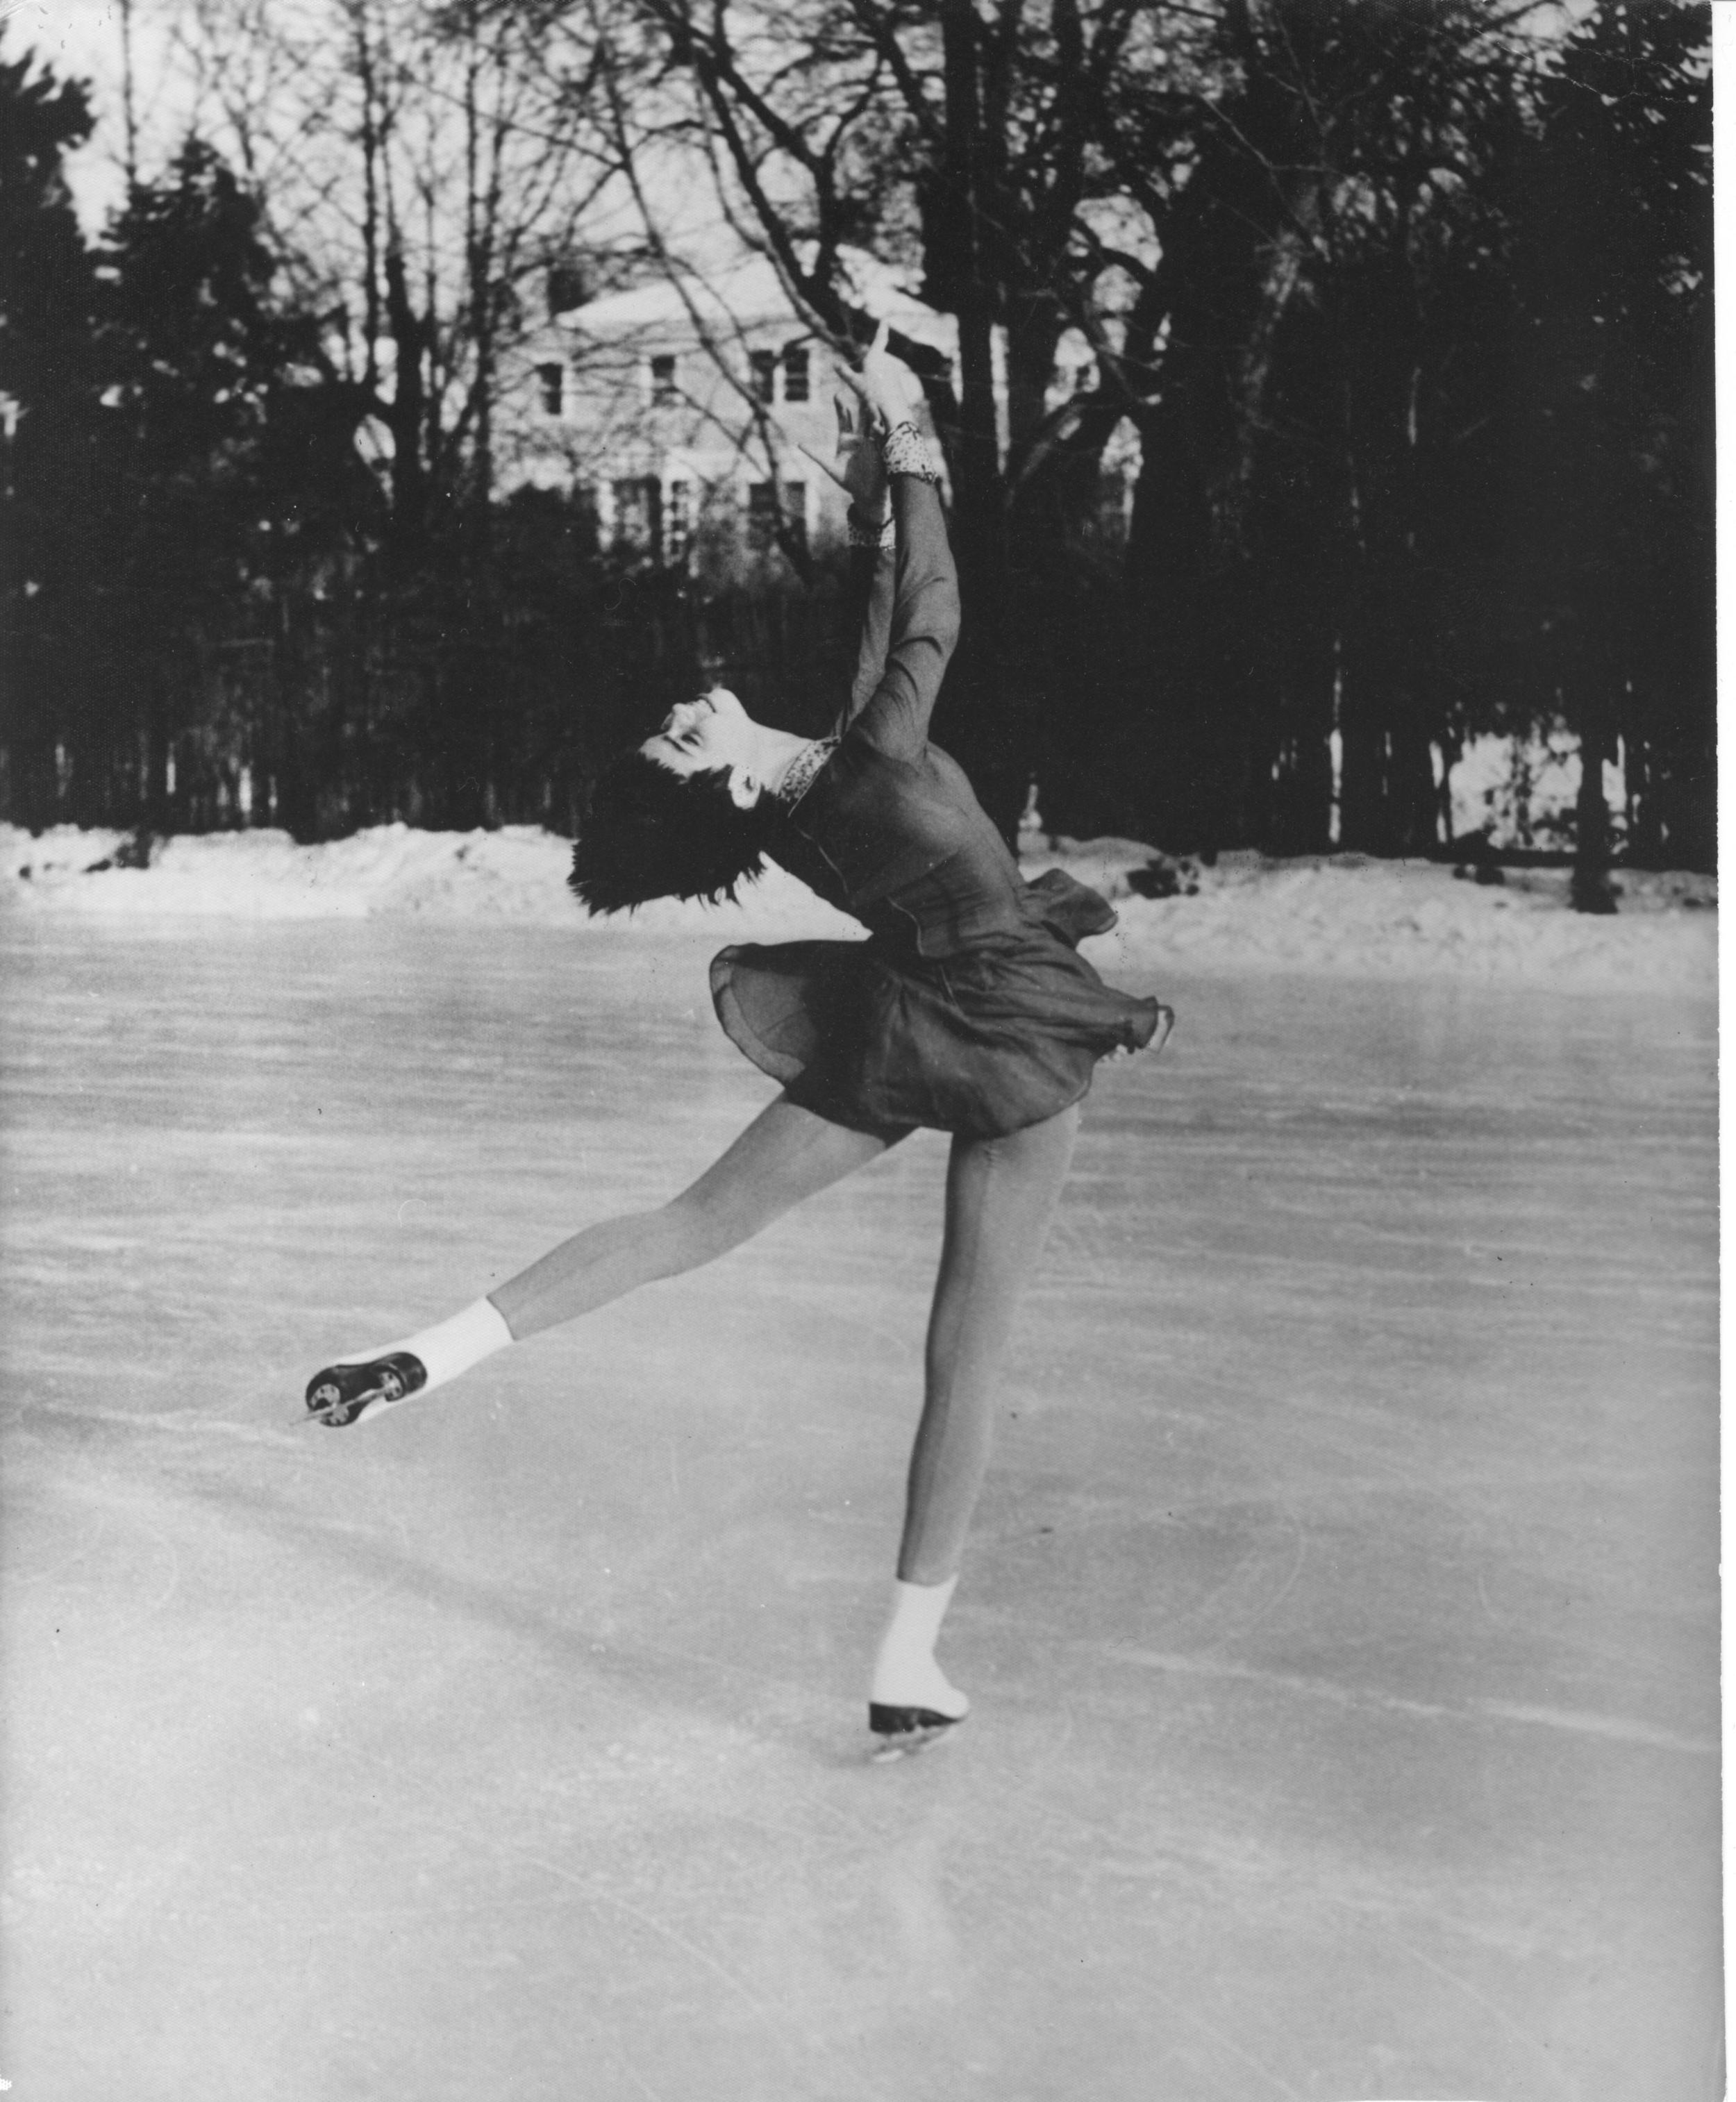 Nine-time U.S. Olympic figure skating champion and member of the World Figure Skating Hall of Fame. After retiring from competition, Owen enjoyed a successful career as a coach for the American figure skating team. At the 1961 U.S. National Championships, both of Owen's daughters won gold - 21 year old namesake Maribel in pairs and 16 year old Laurence in ladies' singles. Tragically, all three Owen women perished the following month, when a plane carrying all eighteen members of the U.S. figure skating team crashed en route to the World Championships in Prague. The USFS Memorial Fund, created following the crash, has since granted over $10M to young figure skaters across the country, including Michelle Kwan.